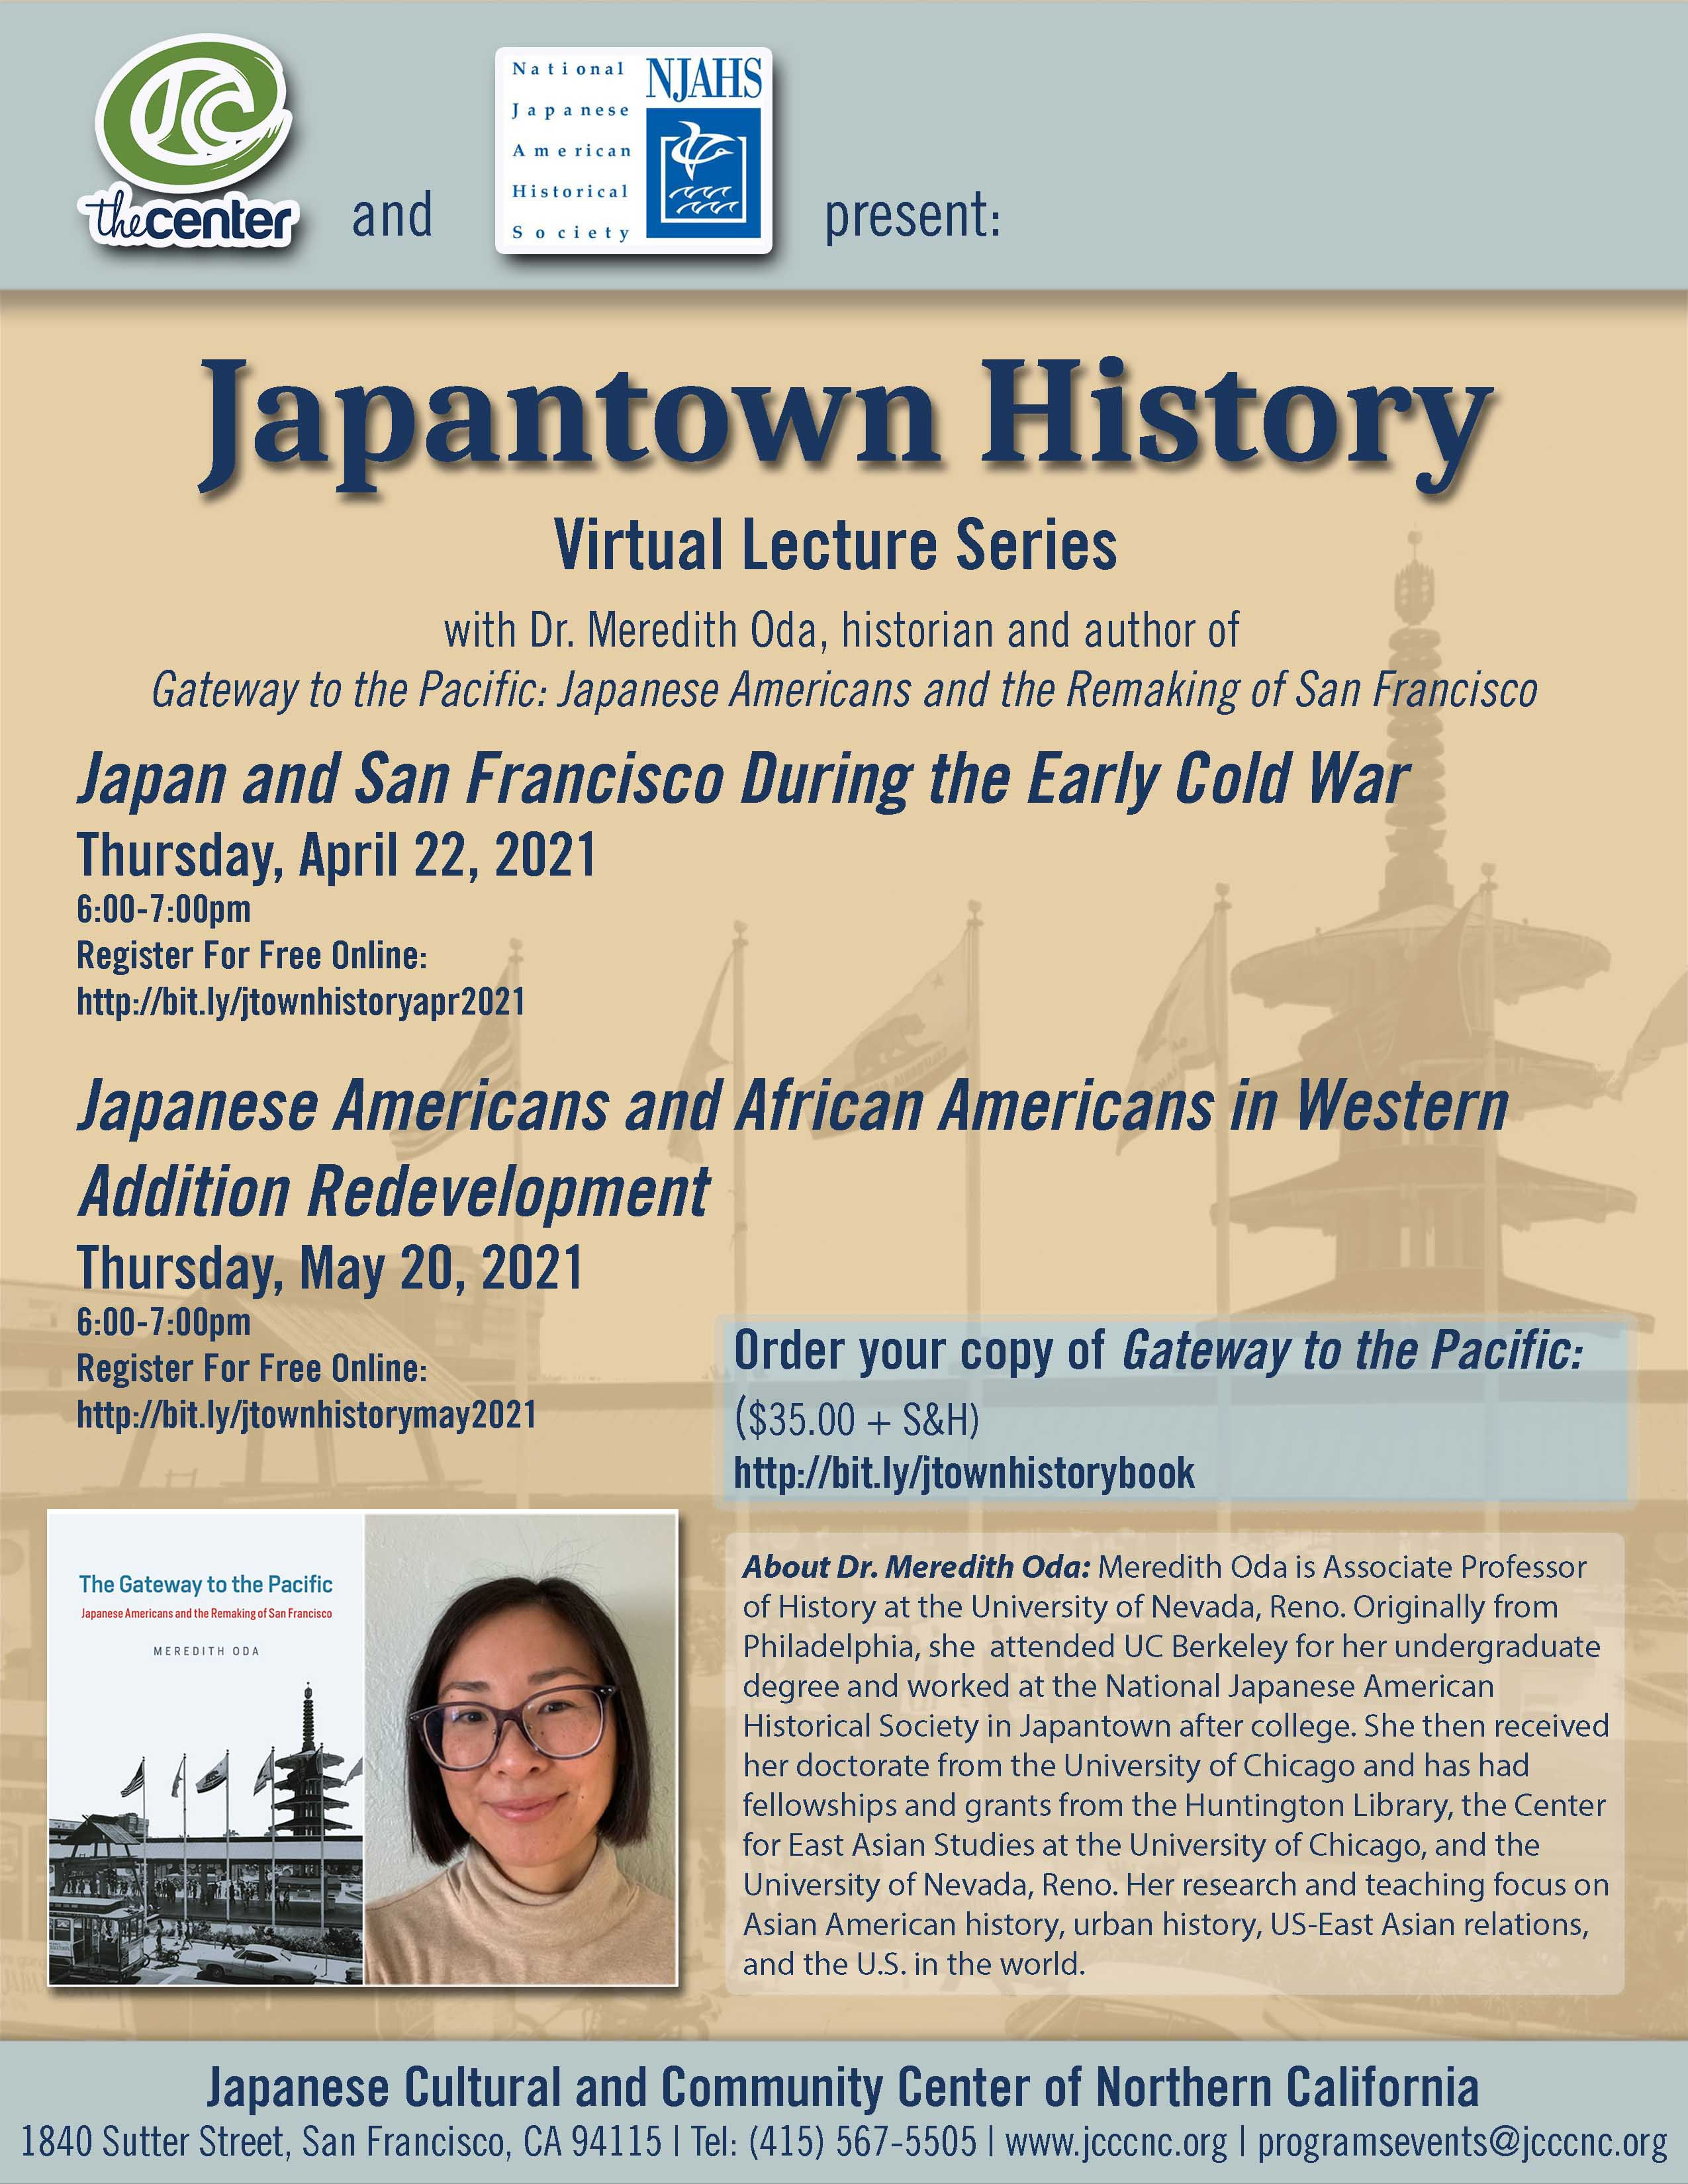 Japantown History Series with Dr. Meredith Oda: Japanese Americans and African Americans in Western Addition Redevelopment